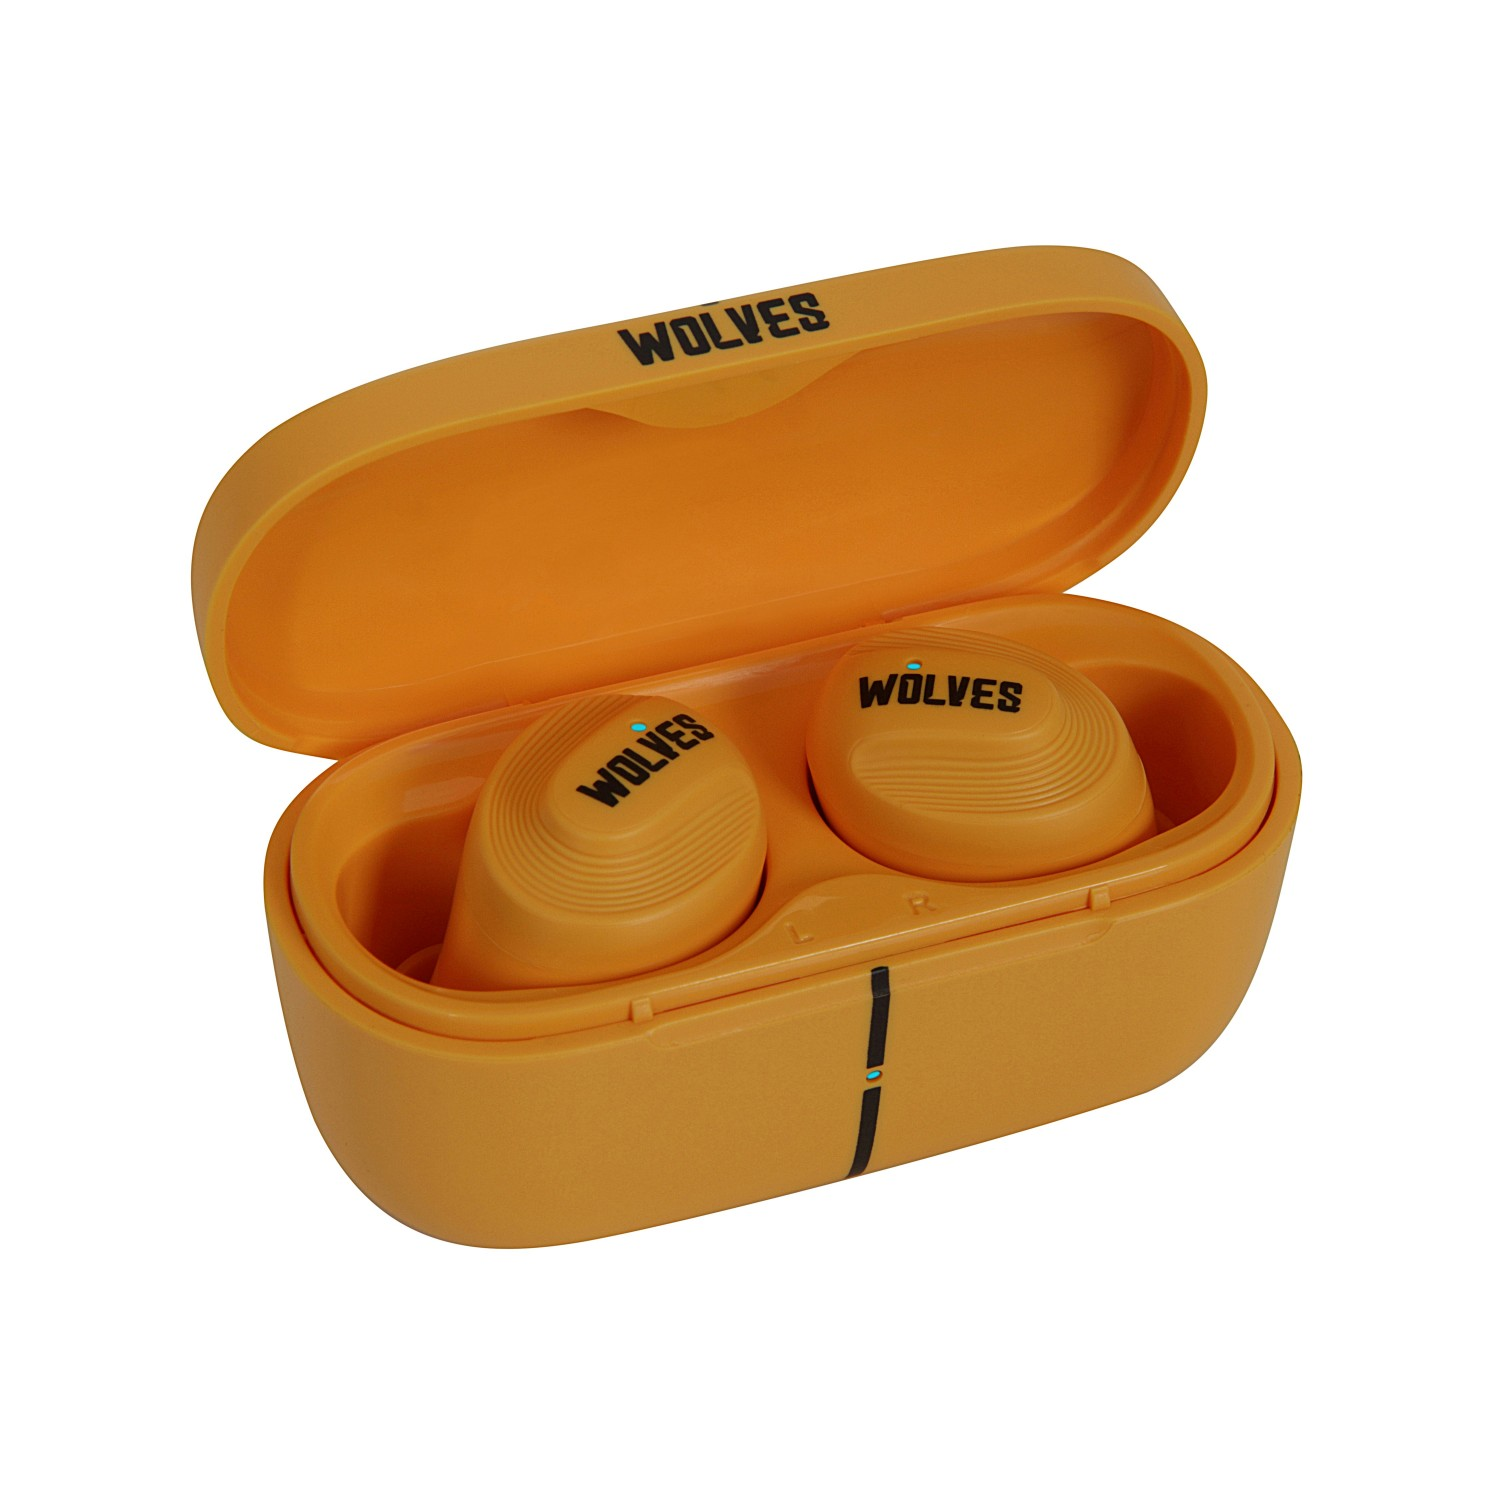 Nutmeg Wireless Earphones - Wolves Edition - GoldThe classic colors of gold and black are matched to show the distinctive style of Wolves. Lightweight designTouch Control Move your finger to switch various functions easily;Bluetooth V5.0 chip Fast connection, compatible with iOS and Android systems;HiFi chip with 6mm dynamic drive Restore the essence of sound;IPX5 Waterproof No fear of sweat and rain.